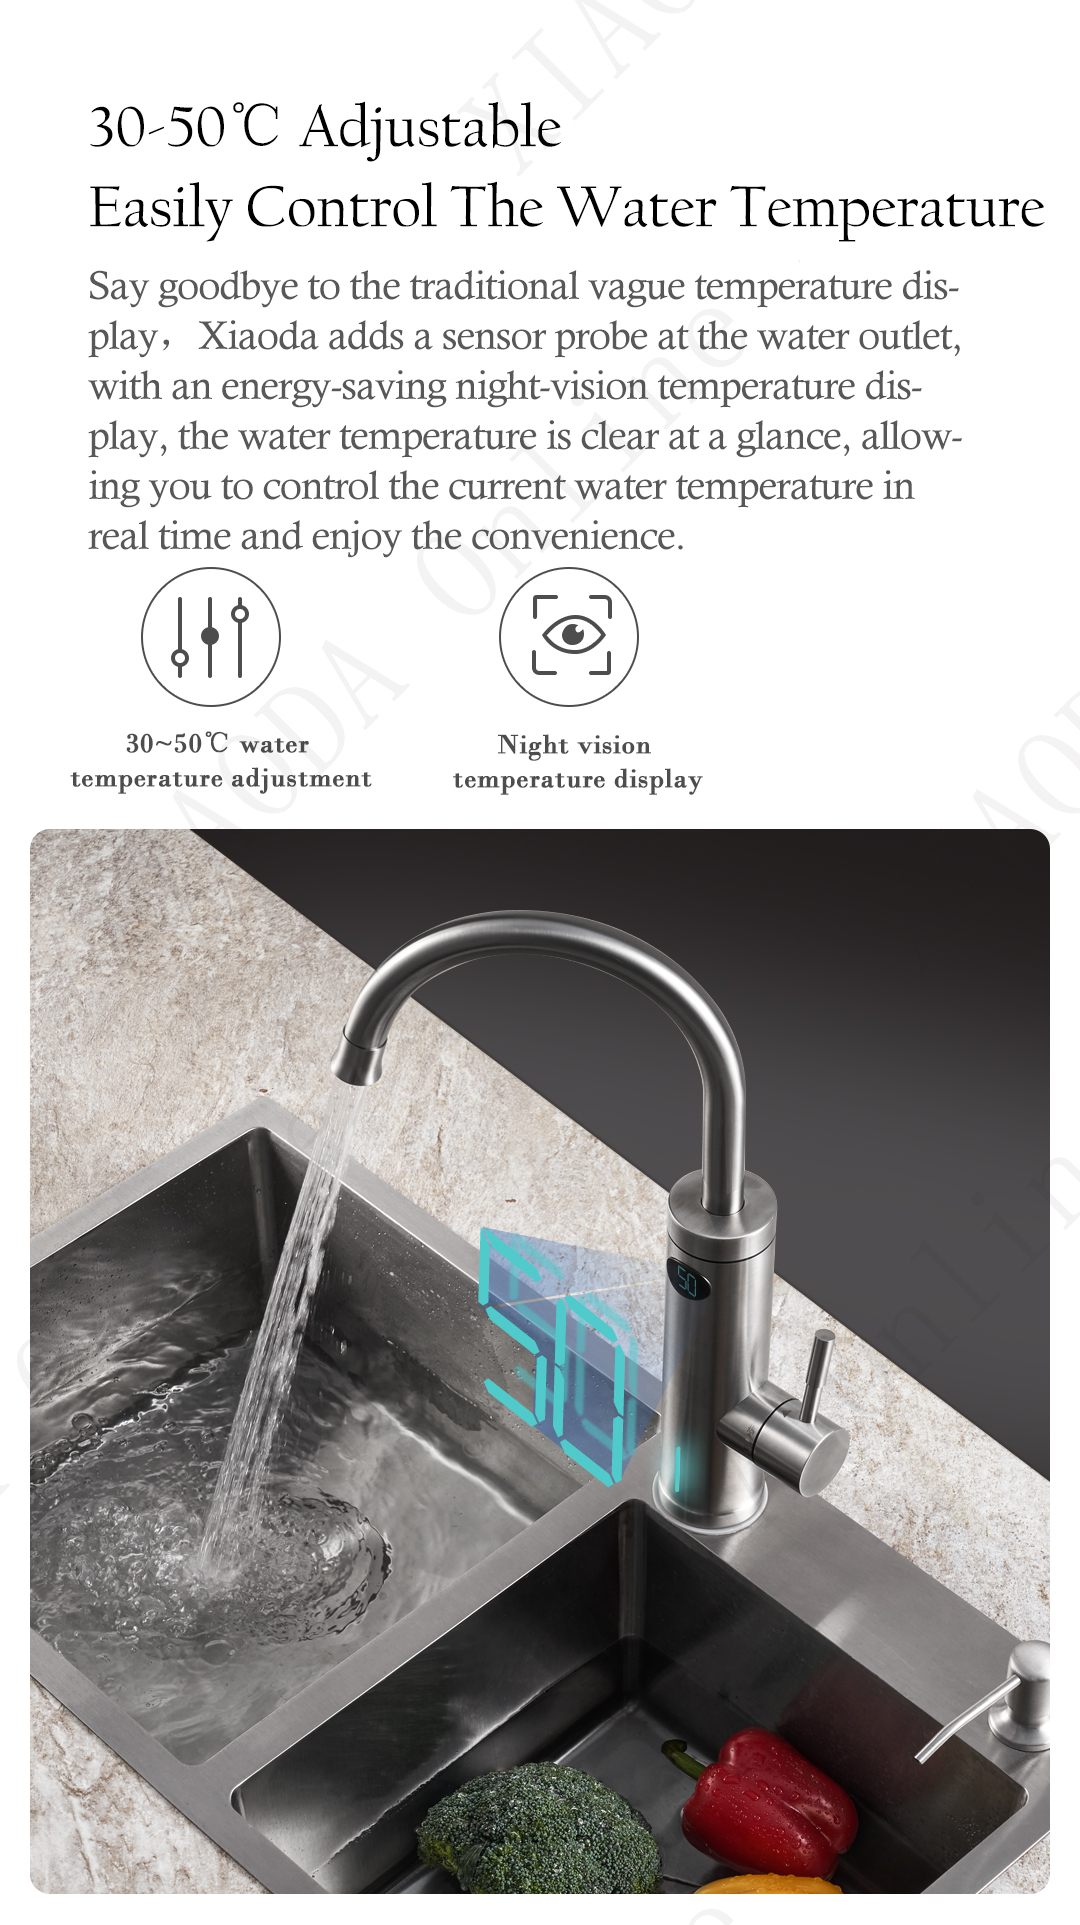 Xiaoda integrated Instant hot water faucet